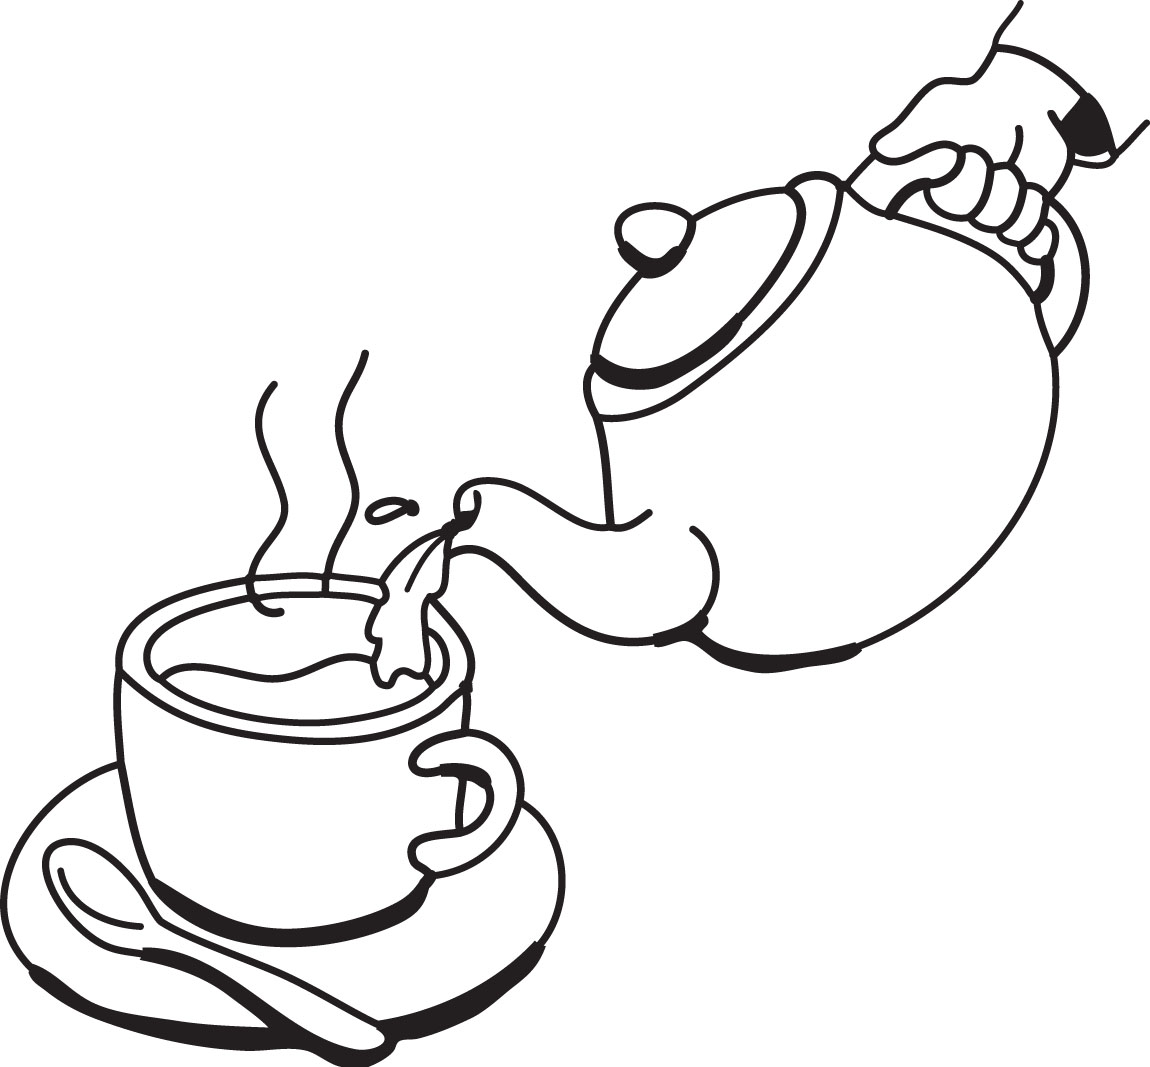 tea cup clipart black and white - photo #36